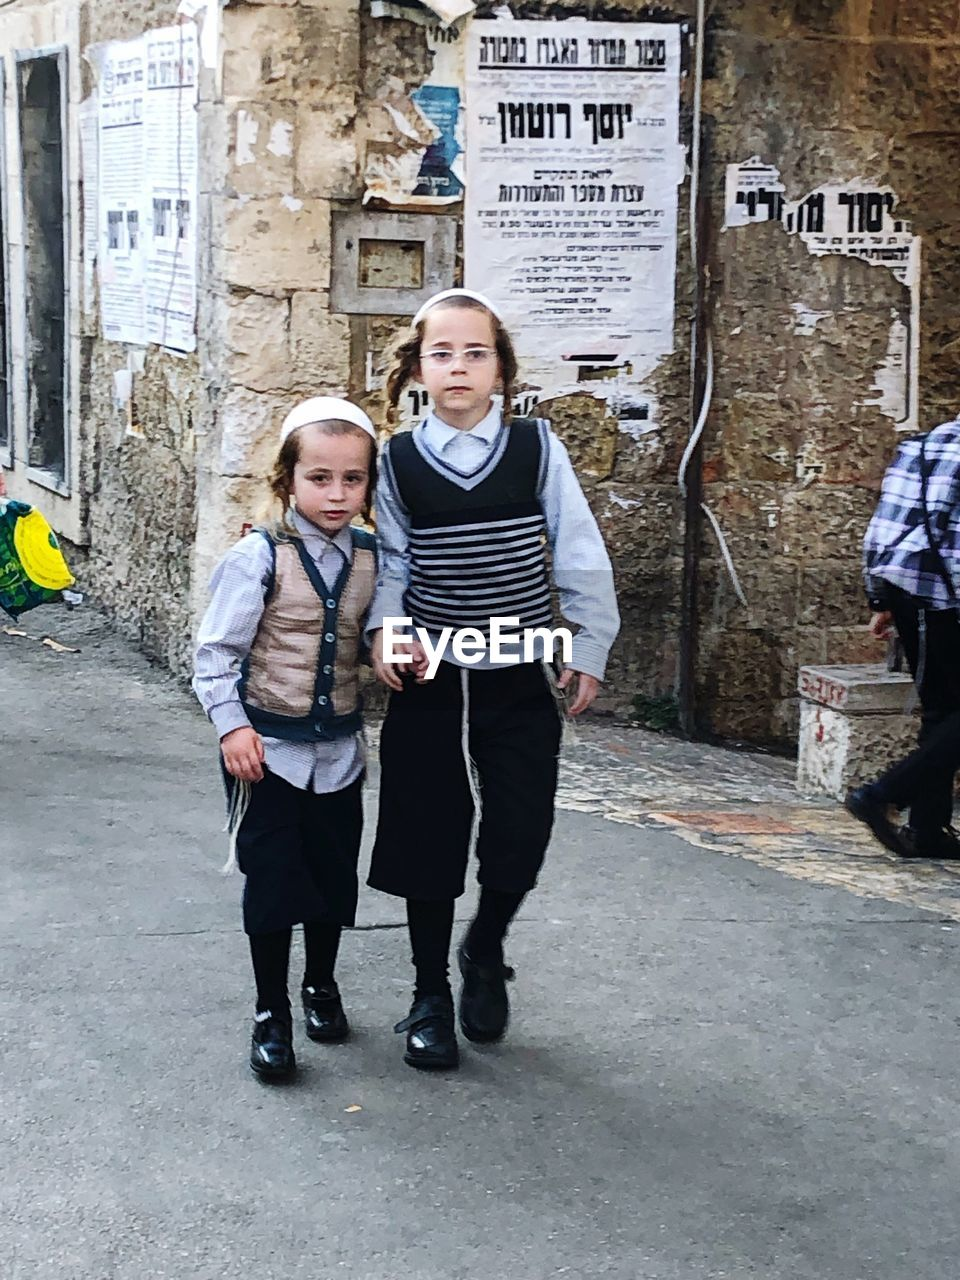 full length, casual clothing, togetherness, two people, looking at camera, portrait, women, real people, front view, men, standing, architecture, child, adult, people, males, young men, bonding, boys, teenager, adolescence, teenage boys, couple - relationship, positive emotion